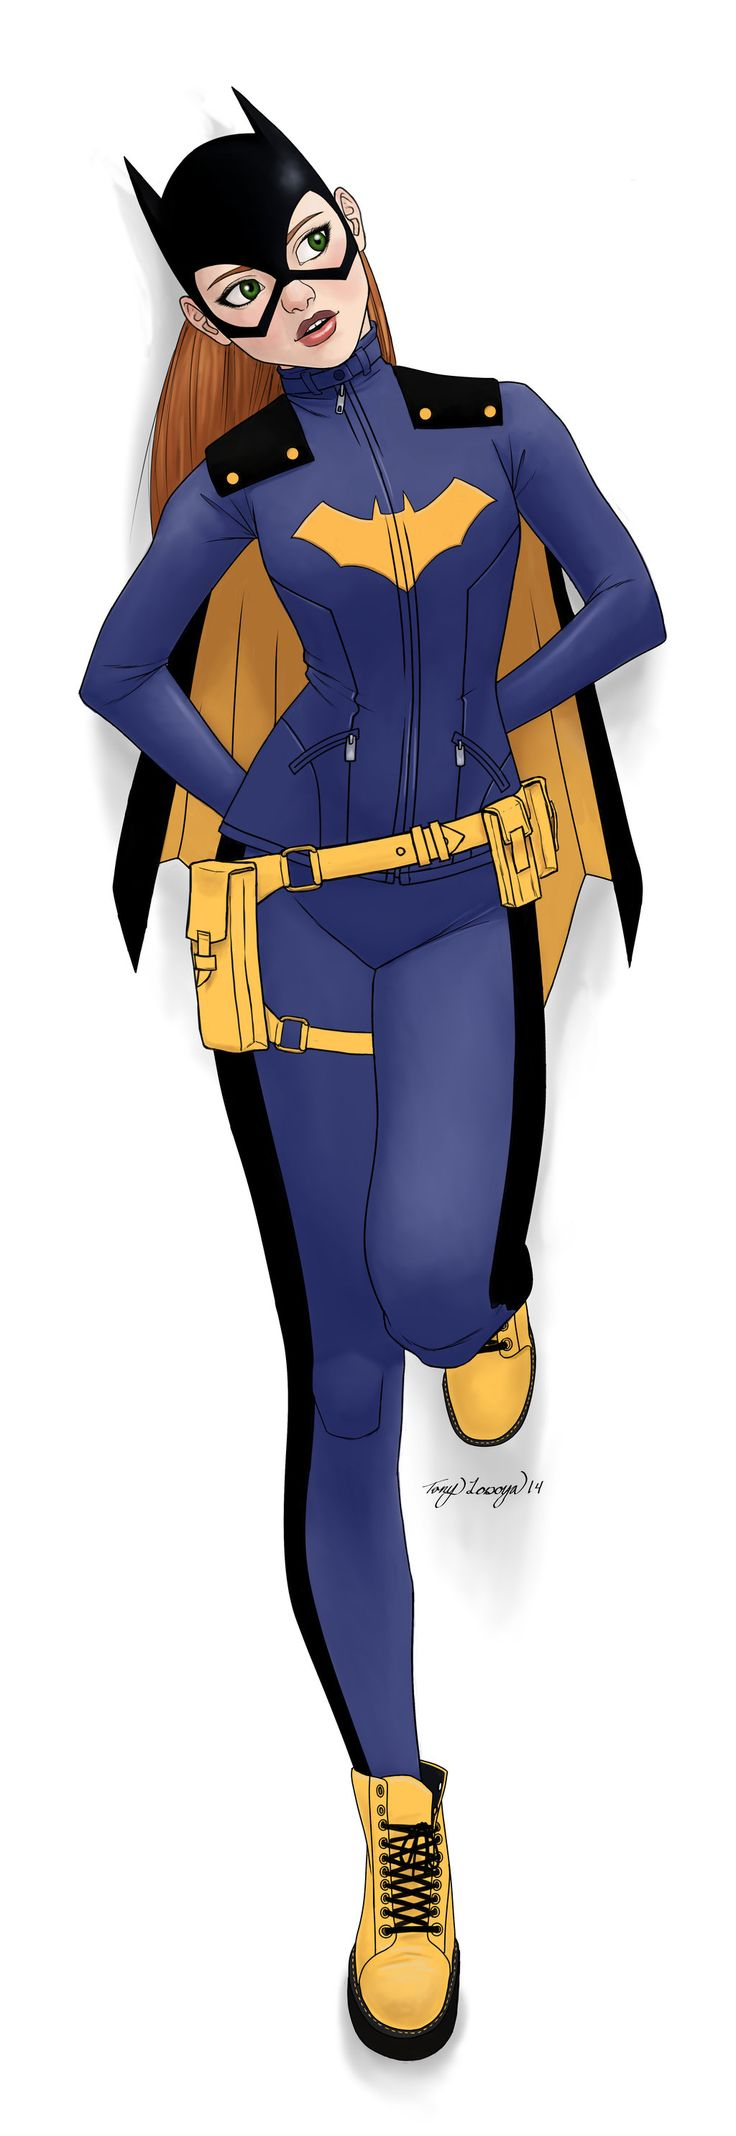 Batgirl! by Tono-x-Tono  https://www.electricturtles.com/collections